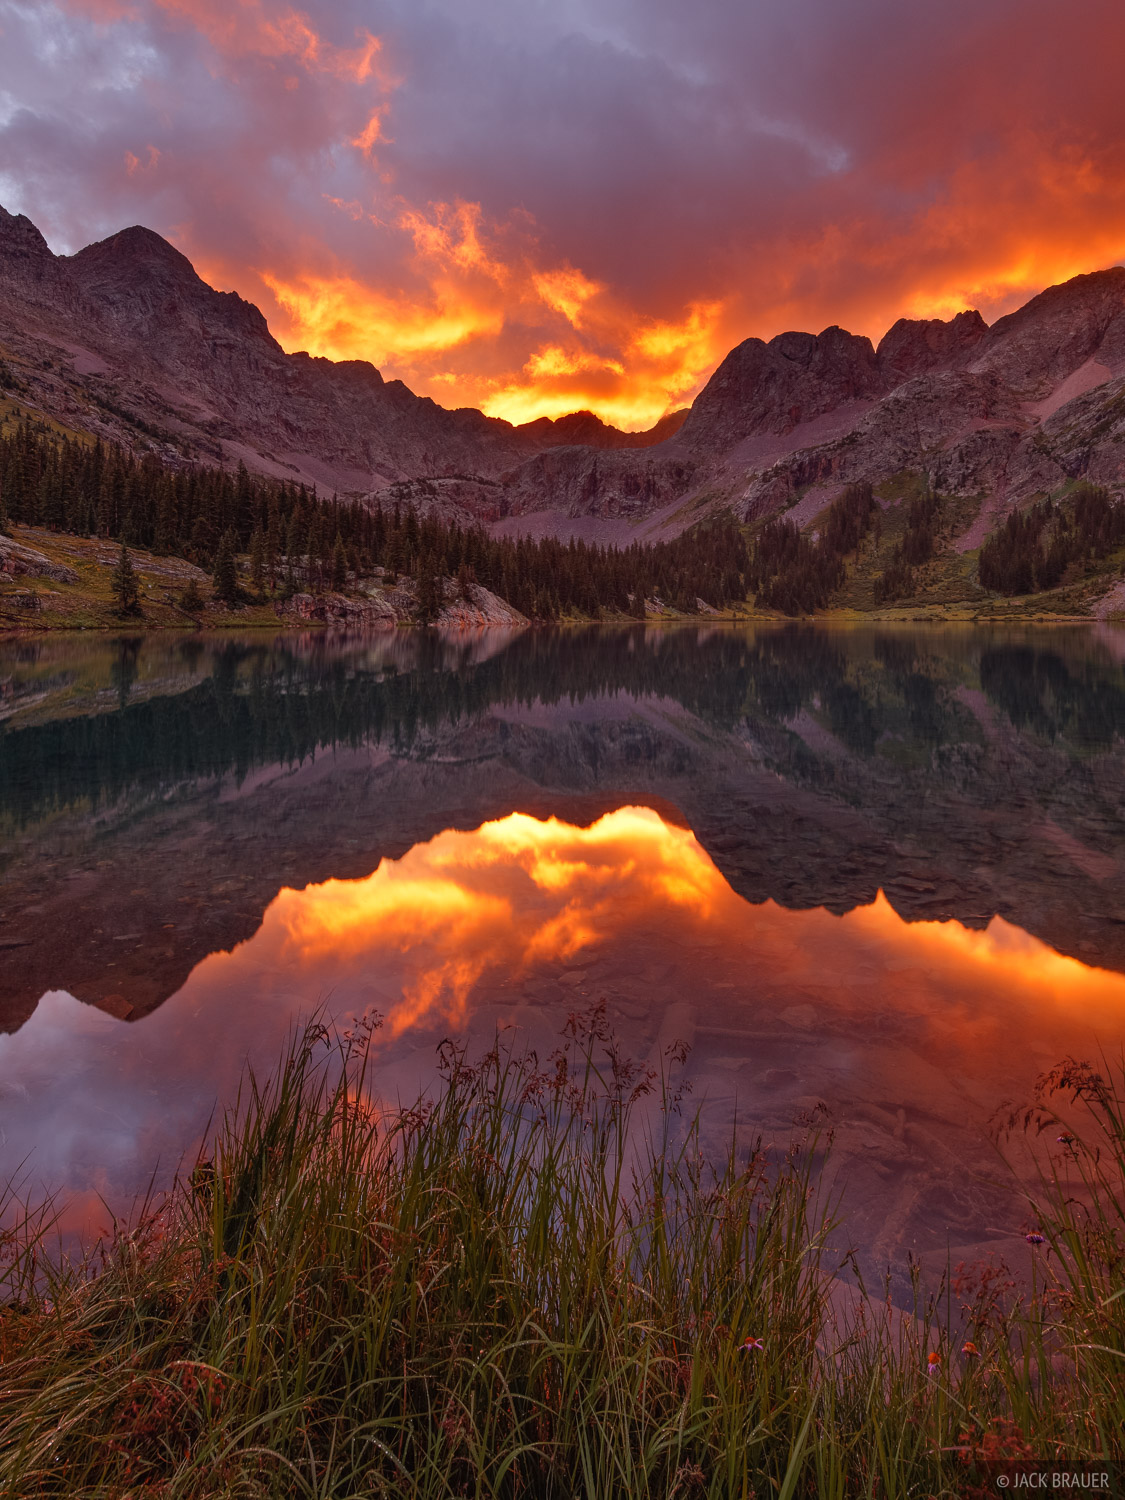 A fiery sunrise relfected in a remote lake near the Grenadier Range, deep in the mountains of the Weminuche Wilderness.